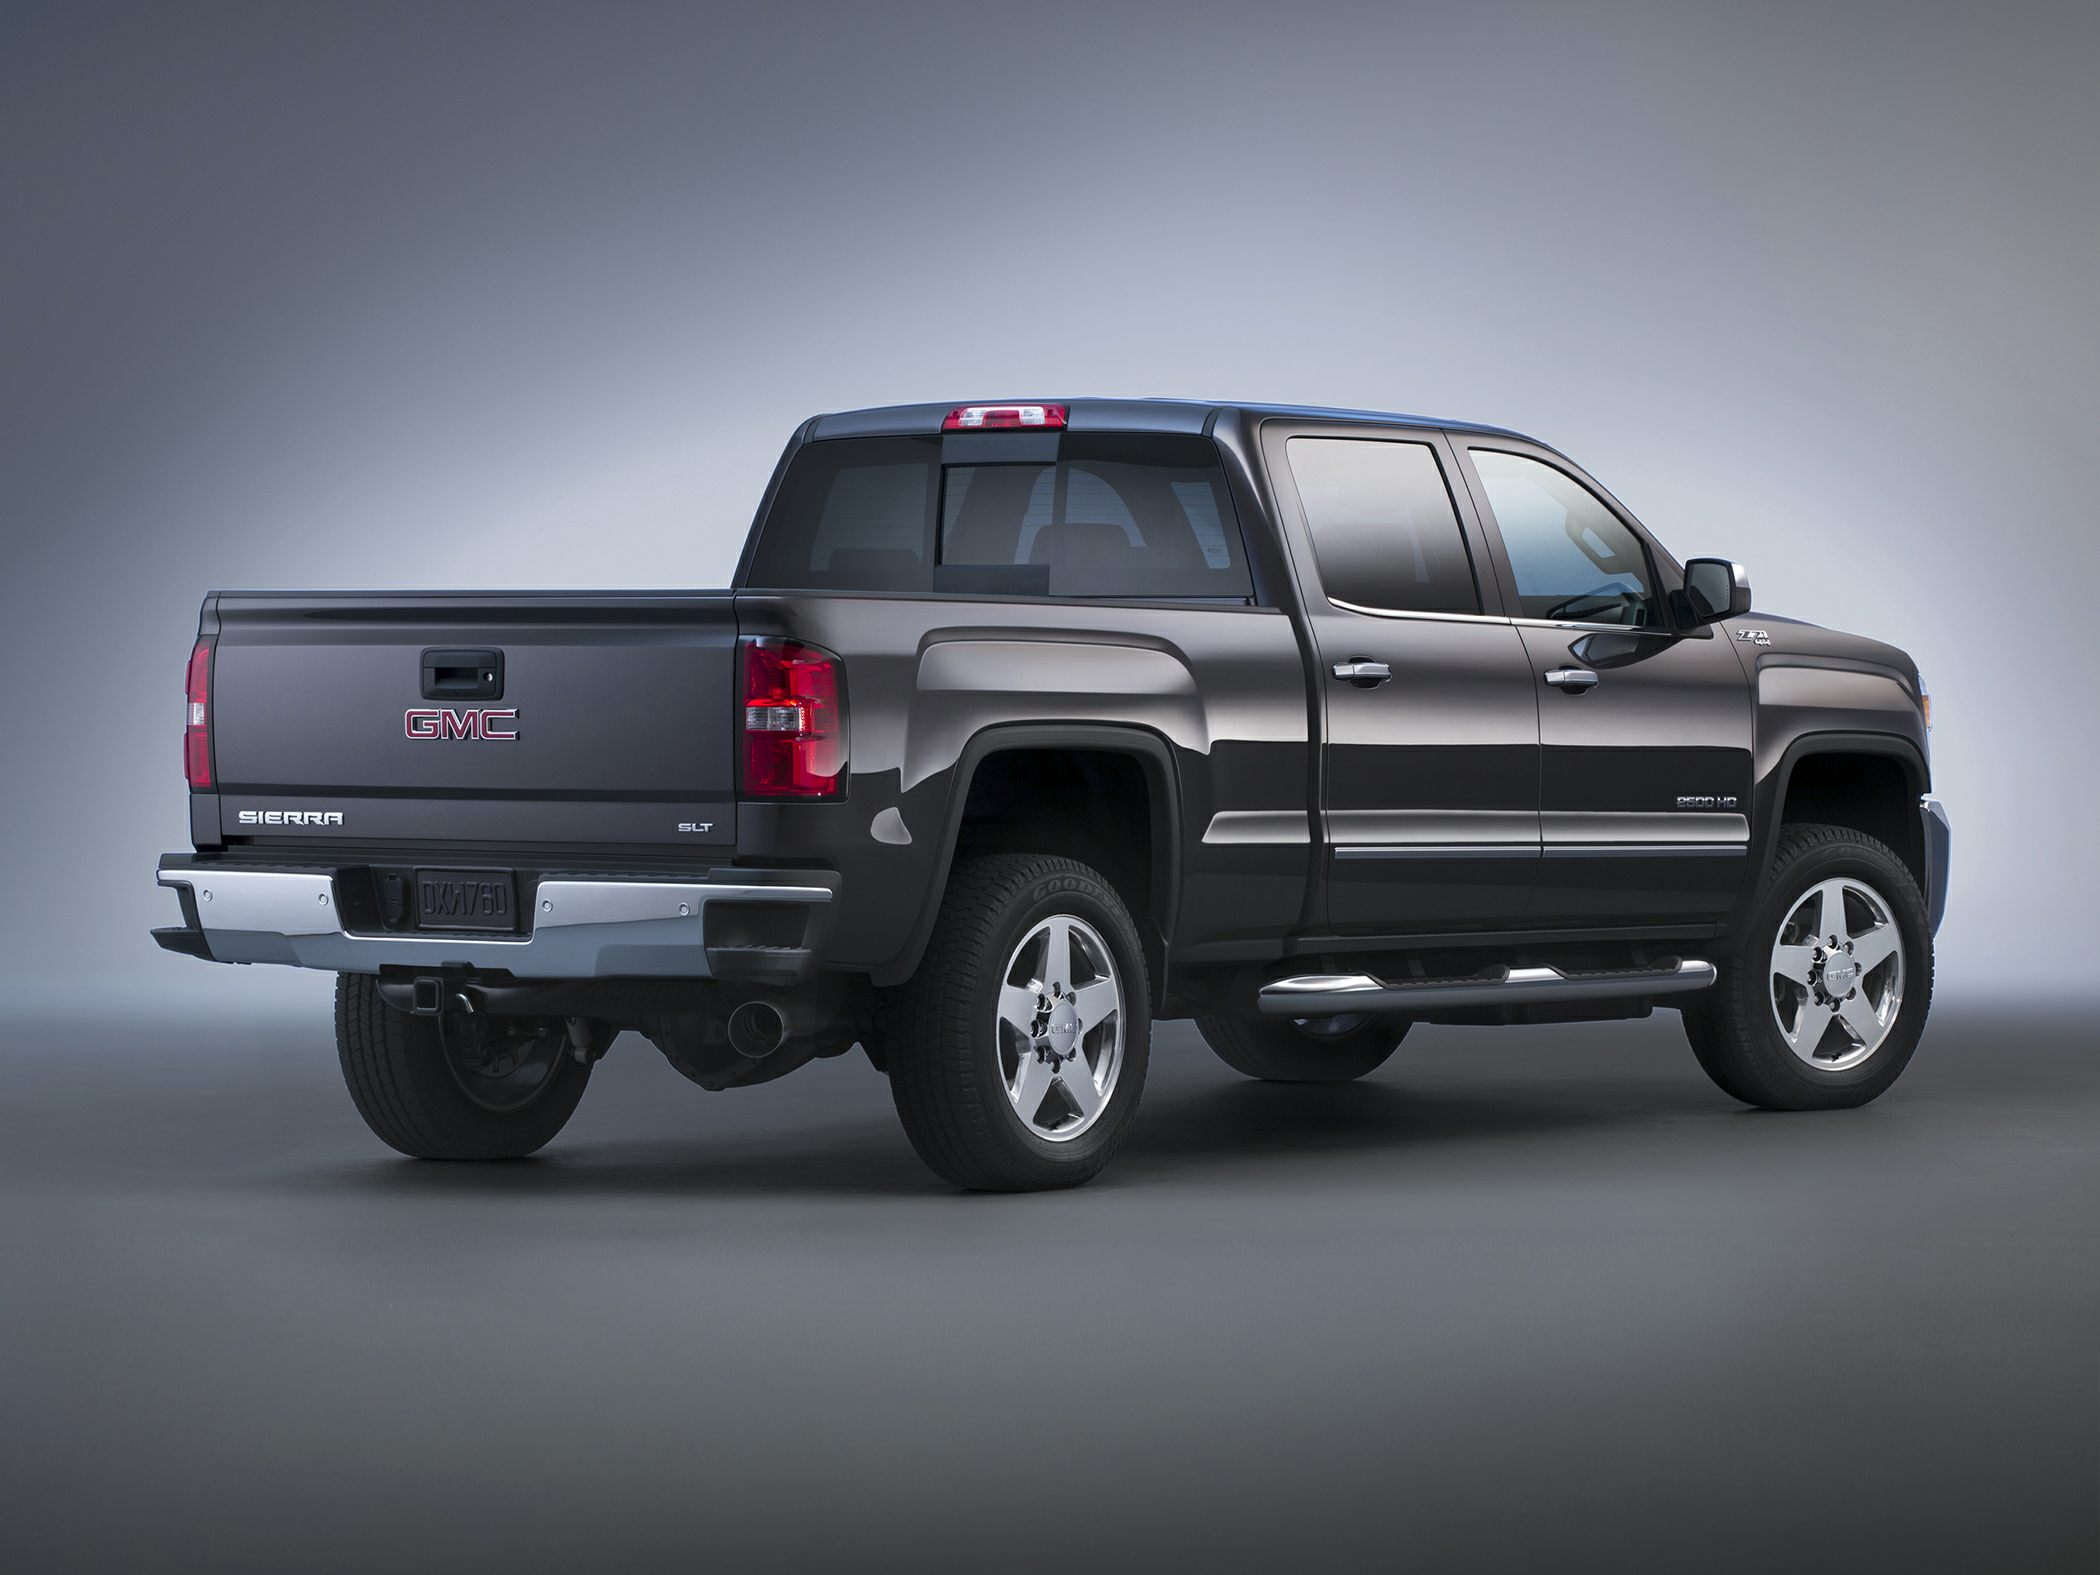 2015 GMC Sierra 3500HD Glam2